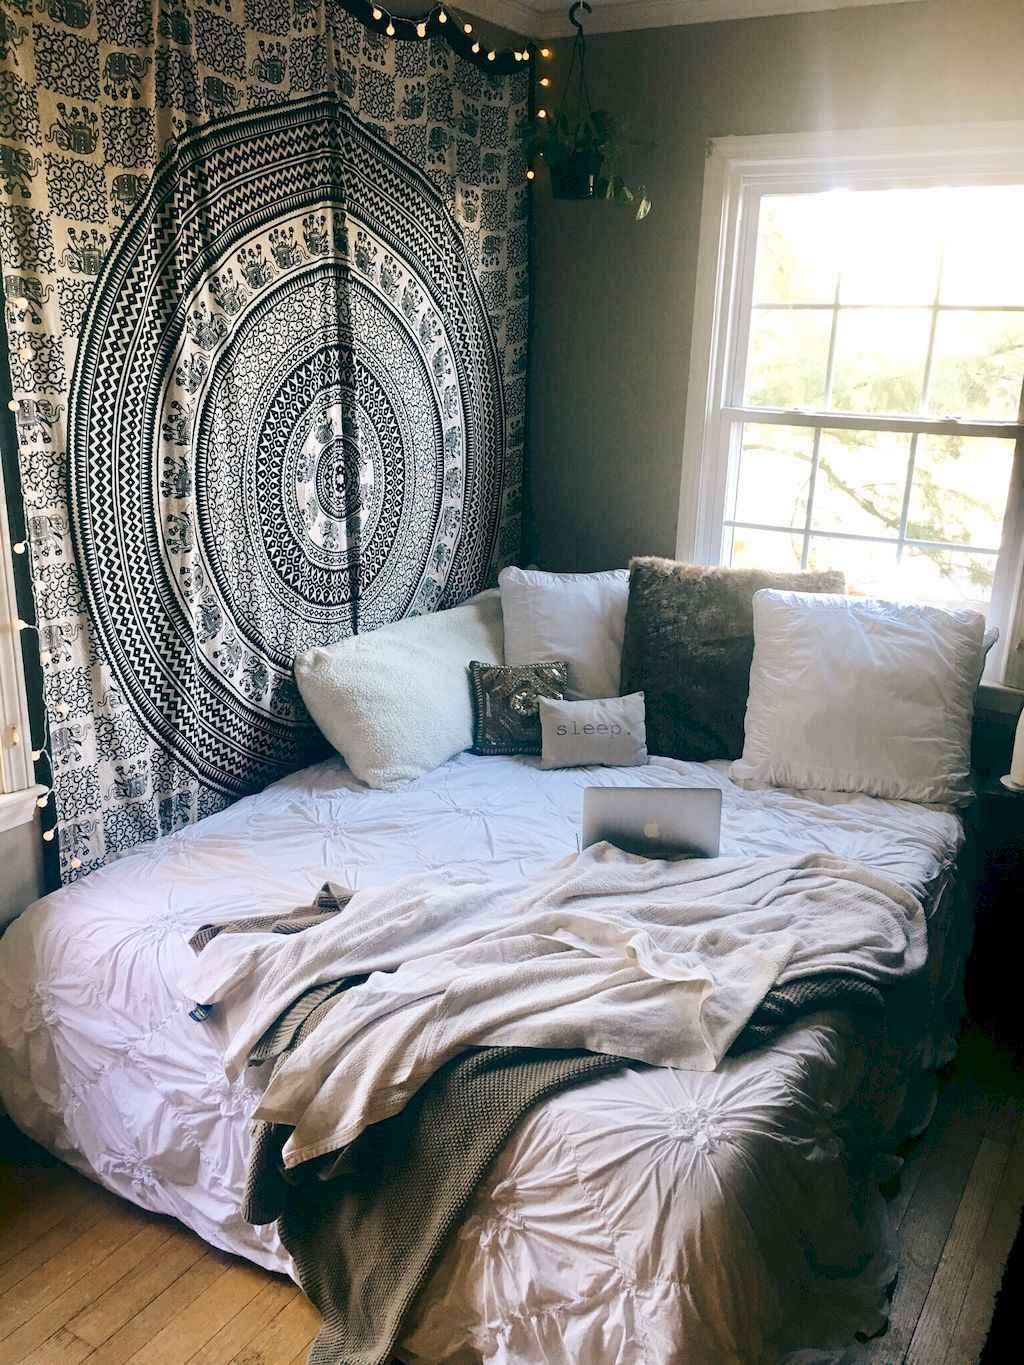 Clever college apartment decorating ideas on a budget (10)